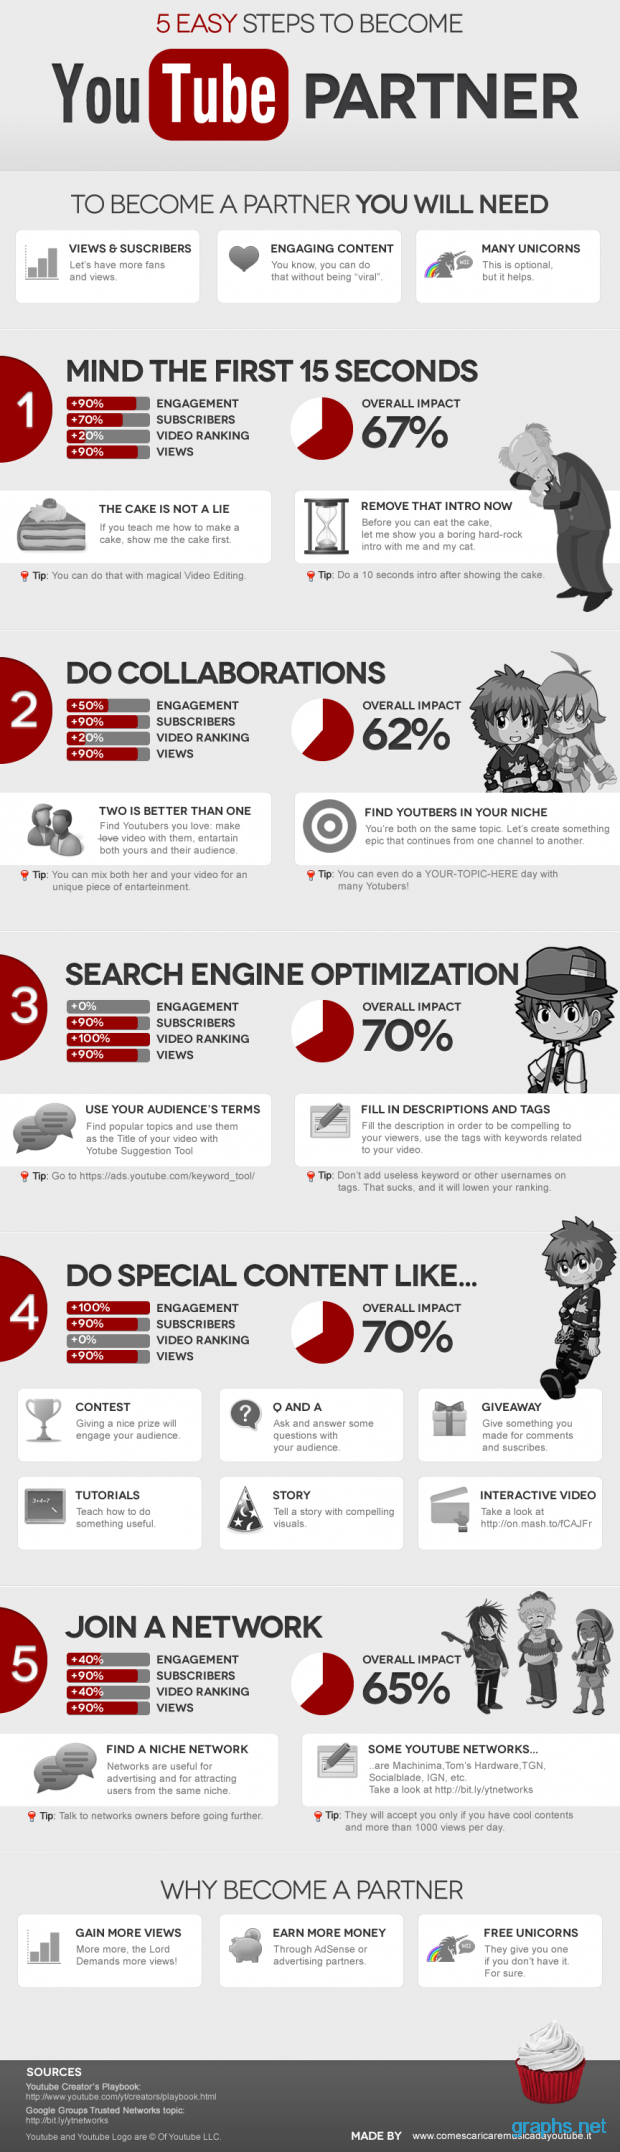 Easy Steps to Become YouTube Partner [infographic]